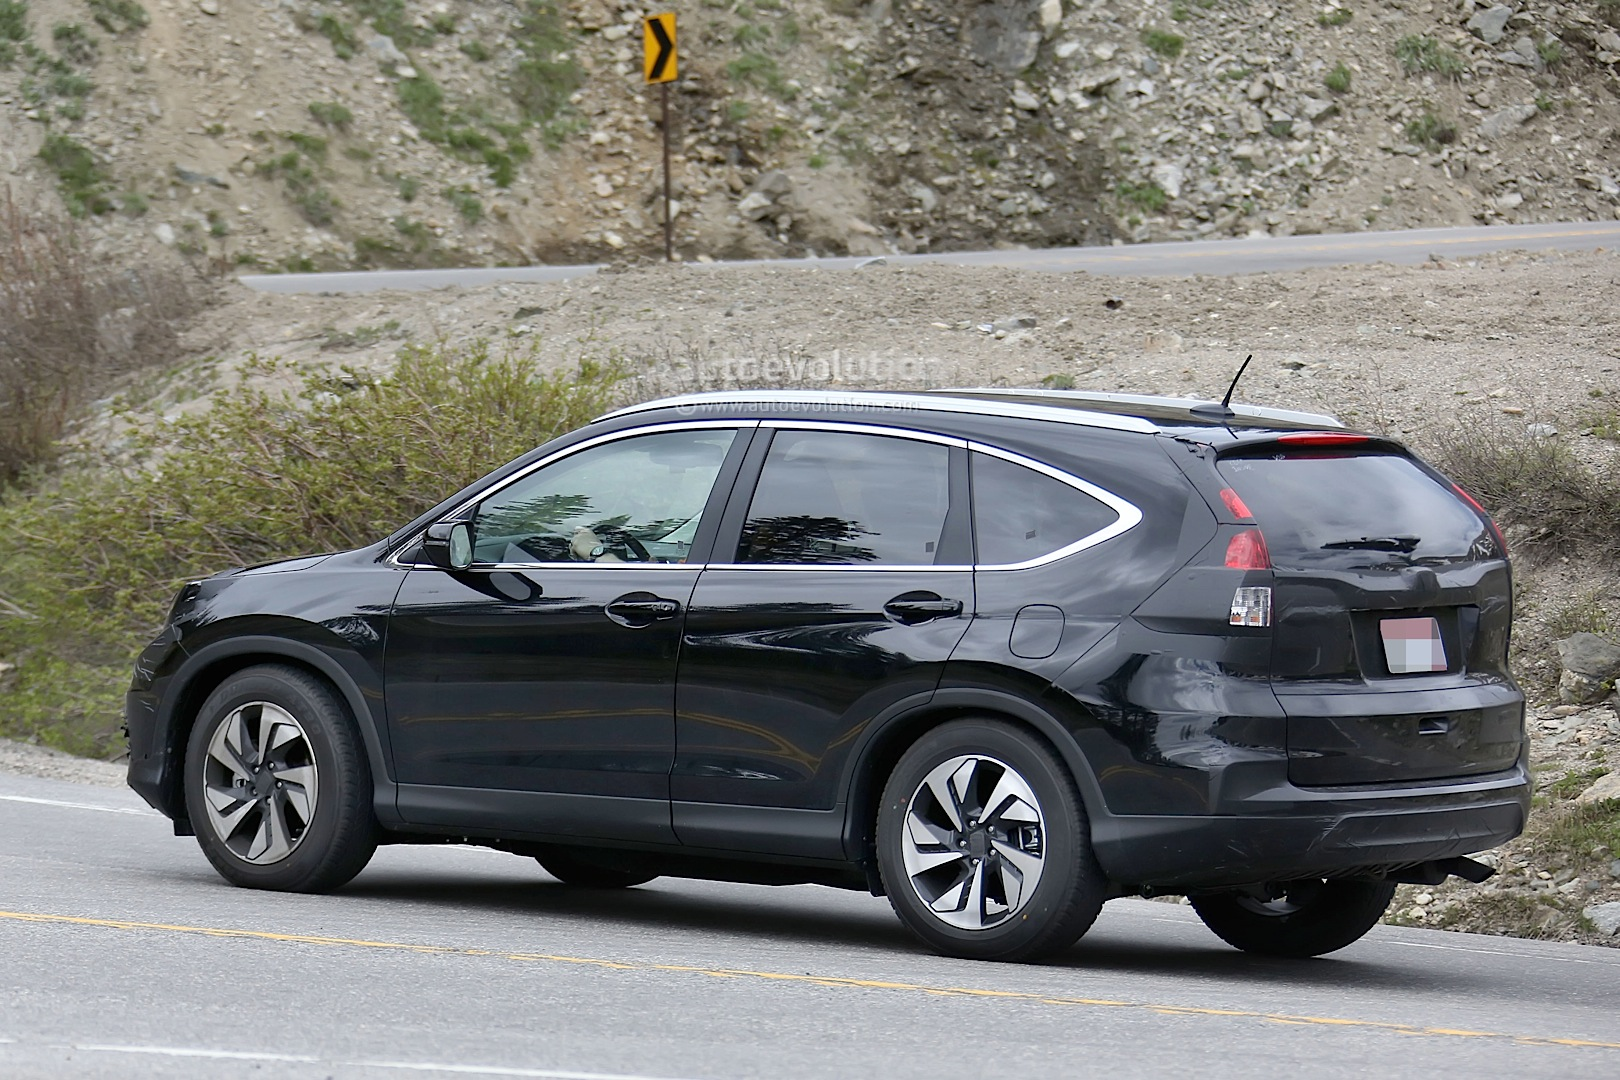 Spyshots 2016 honda cr v facelift testing in the us for Ford edge vs honda crv